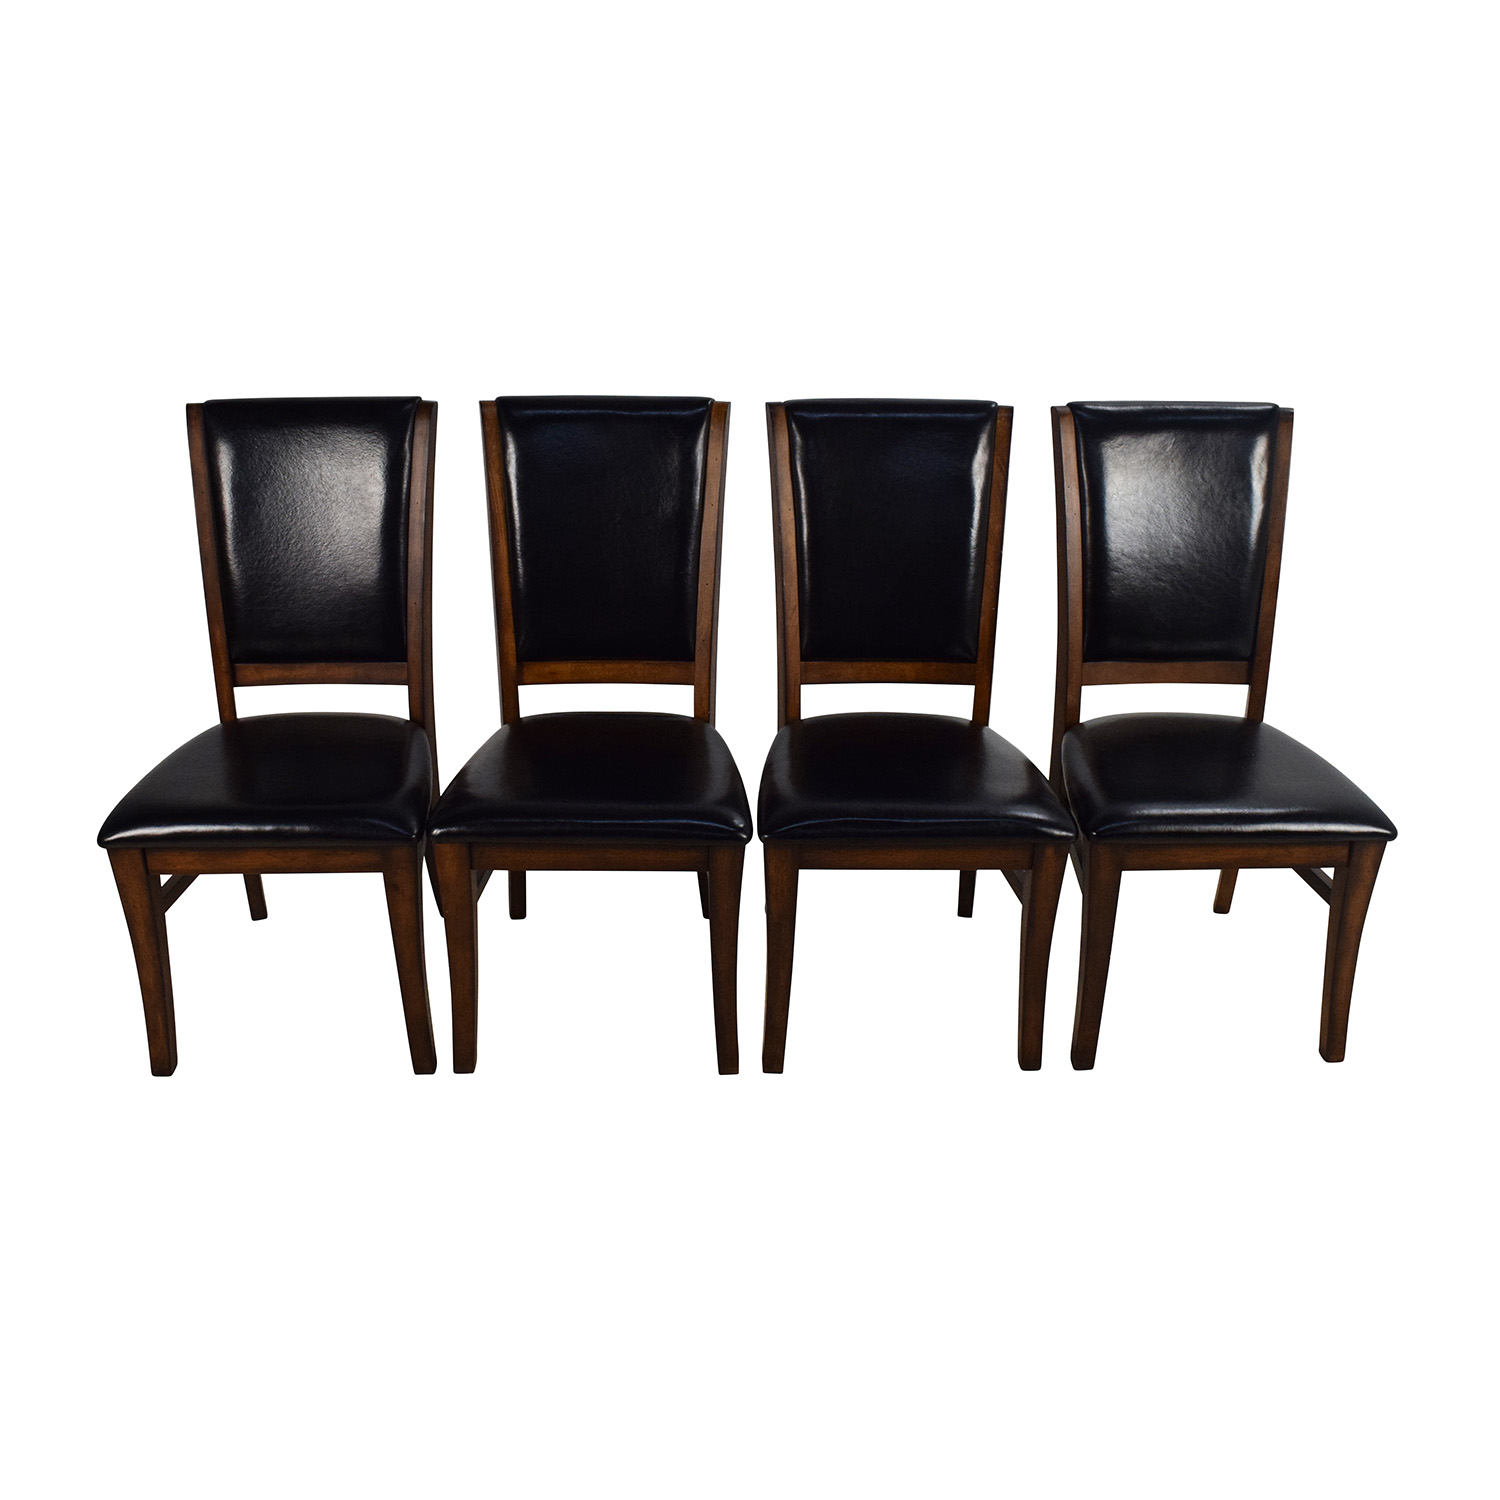 76% off - world market world market leather and wood dining chairs